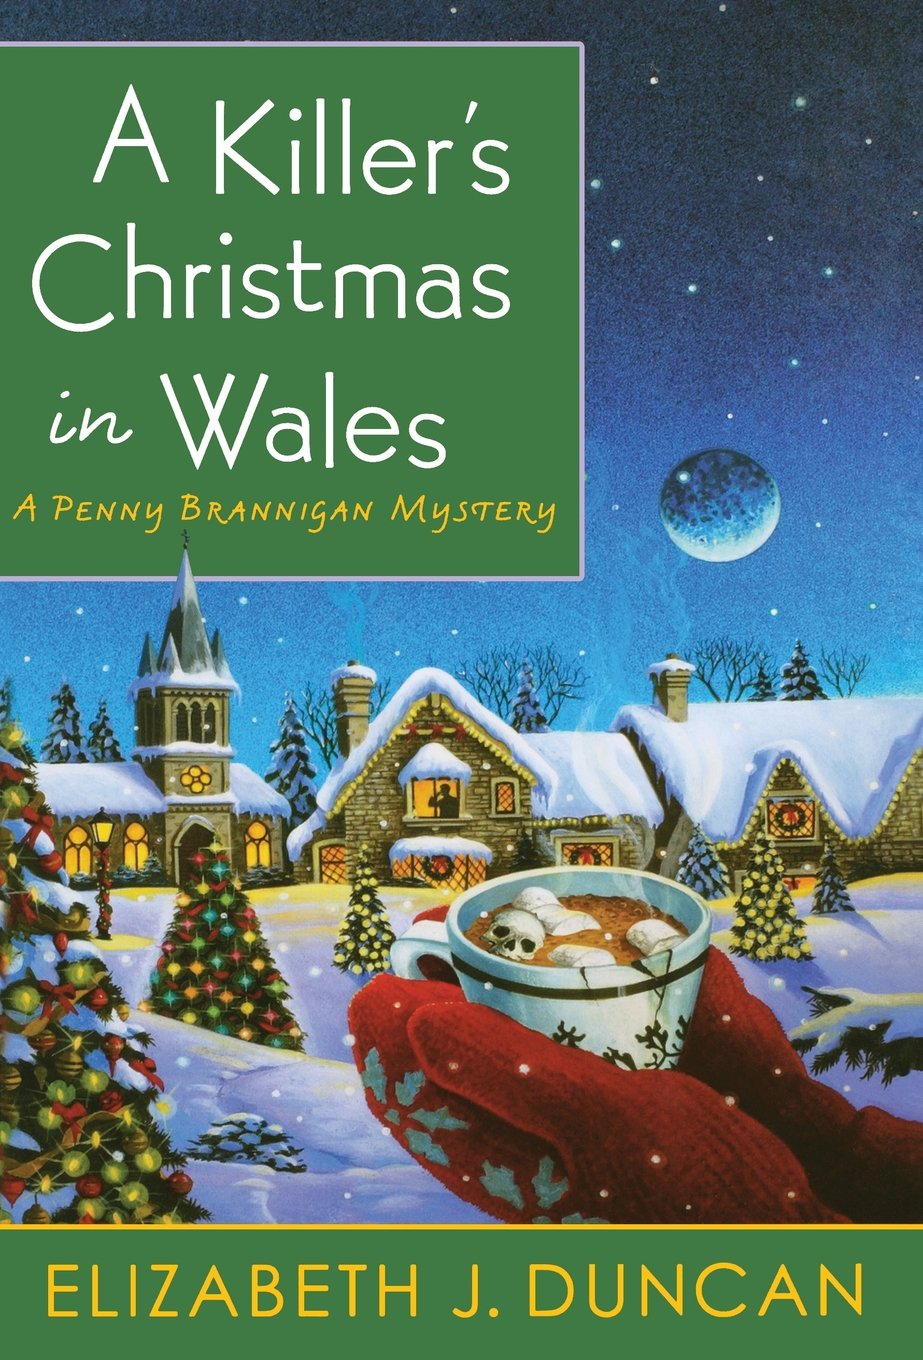 a killers christmas in wales a penny brannigan mystery elizabeth j duncan 9780312622831 amazoncom books - Christmas In Wales